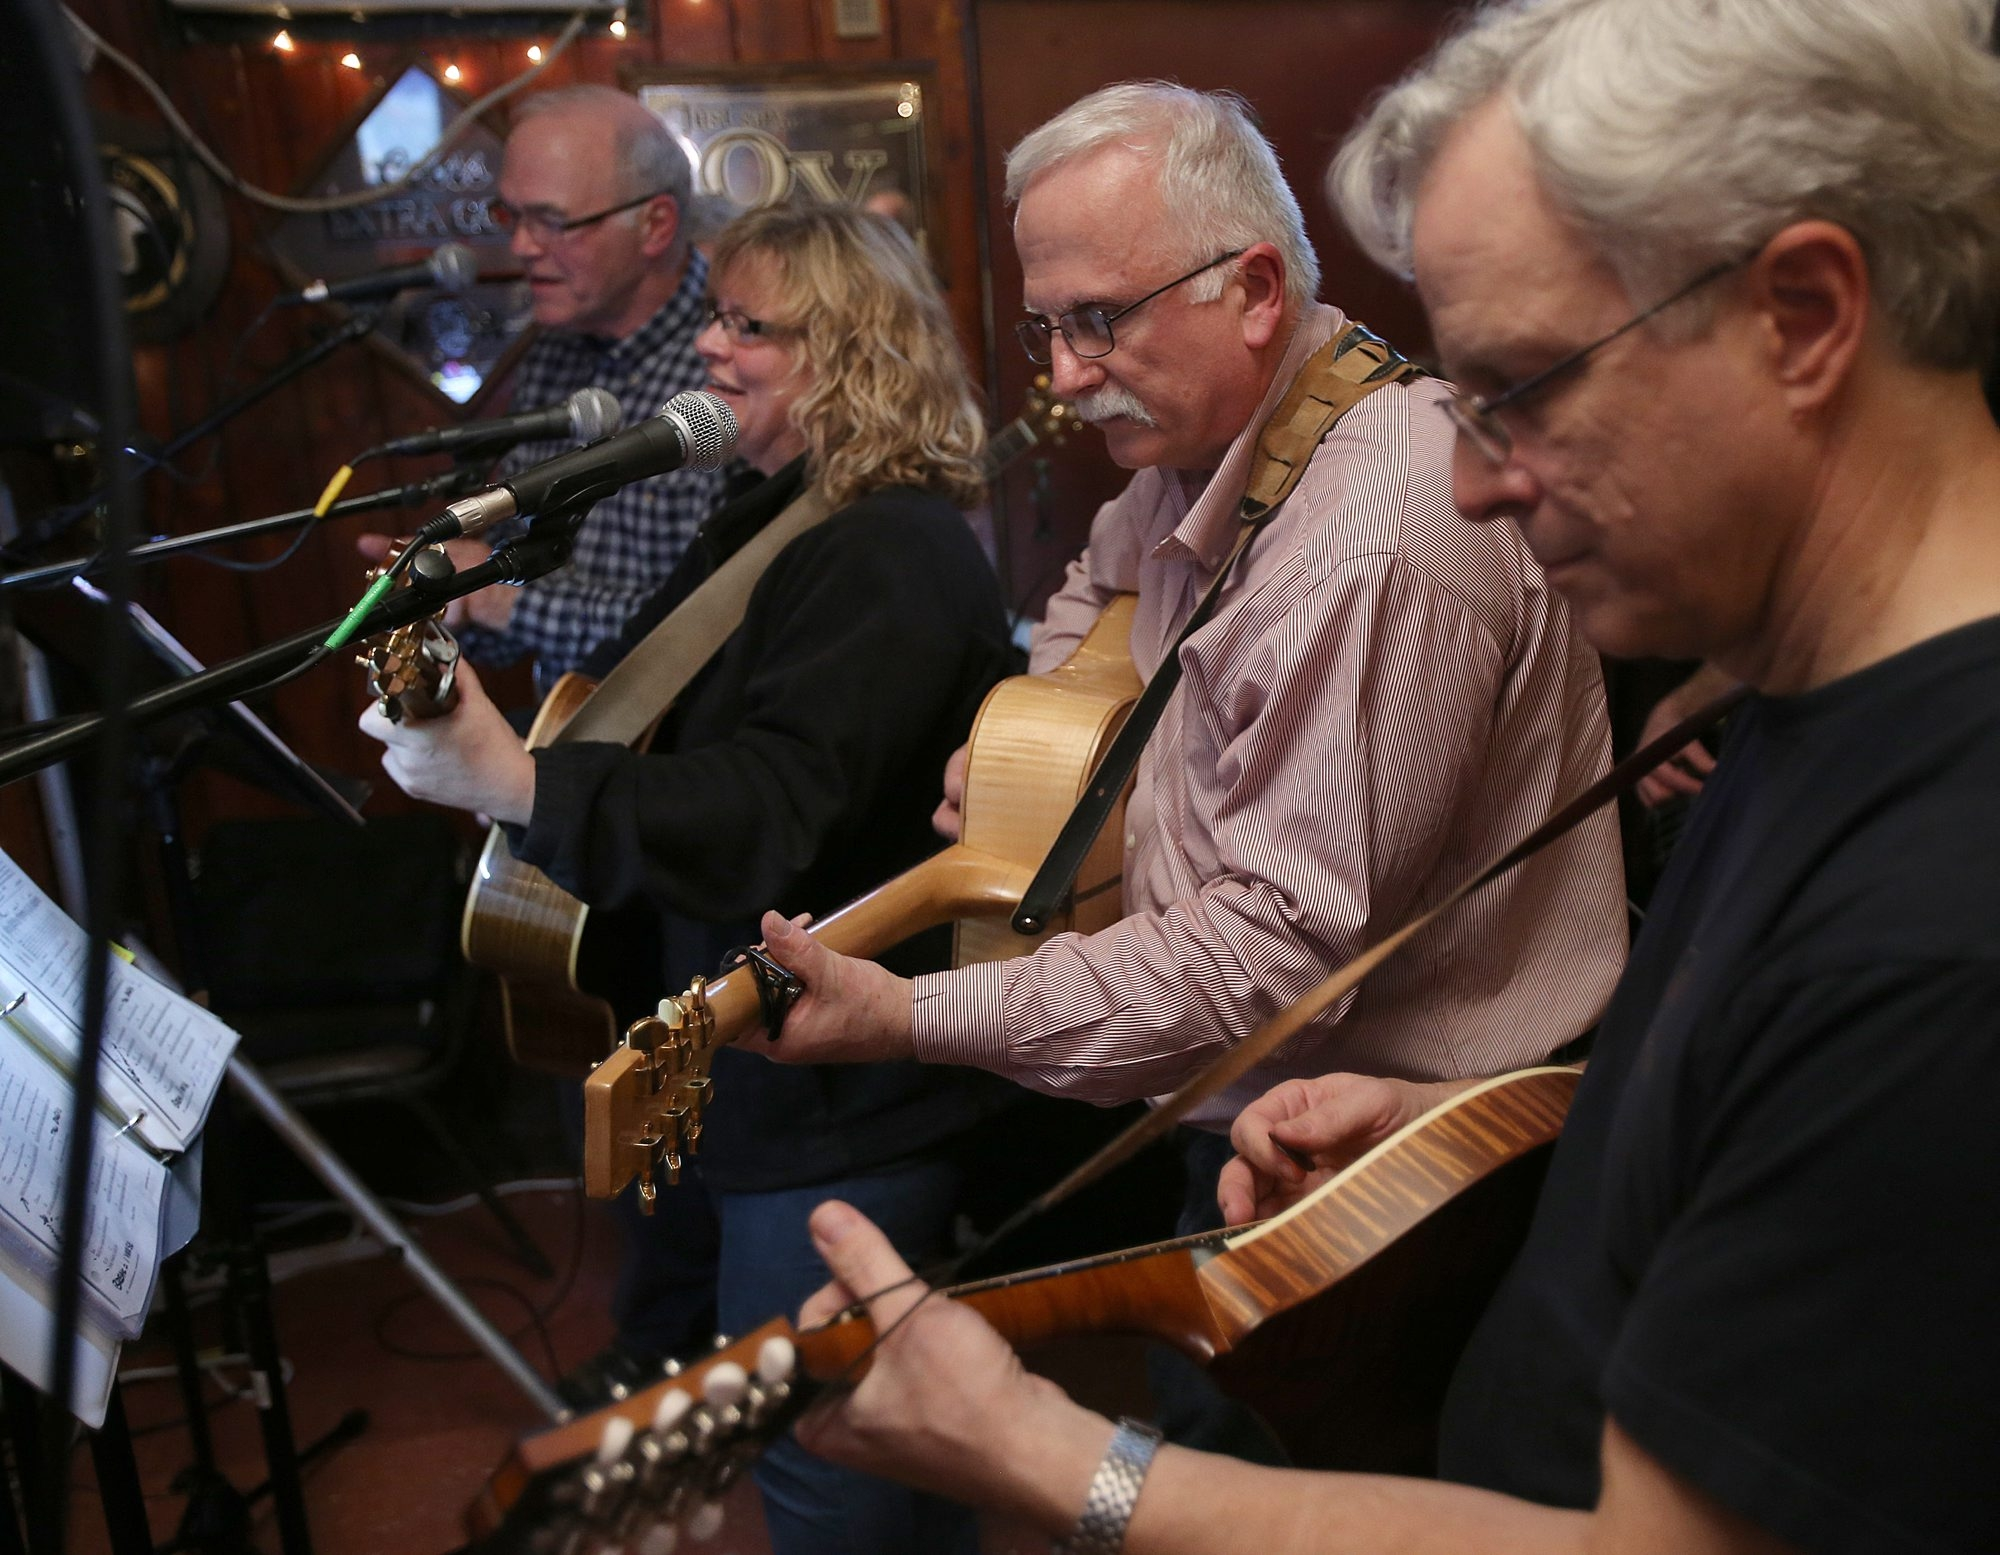 A mix of musicians play together during the Charlie O'Neill Unplugged Club on the first Monday of the month in Talty's Tavern.